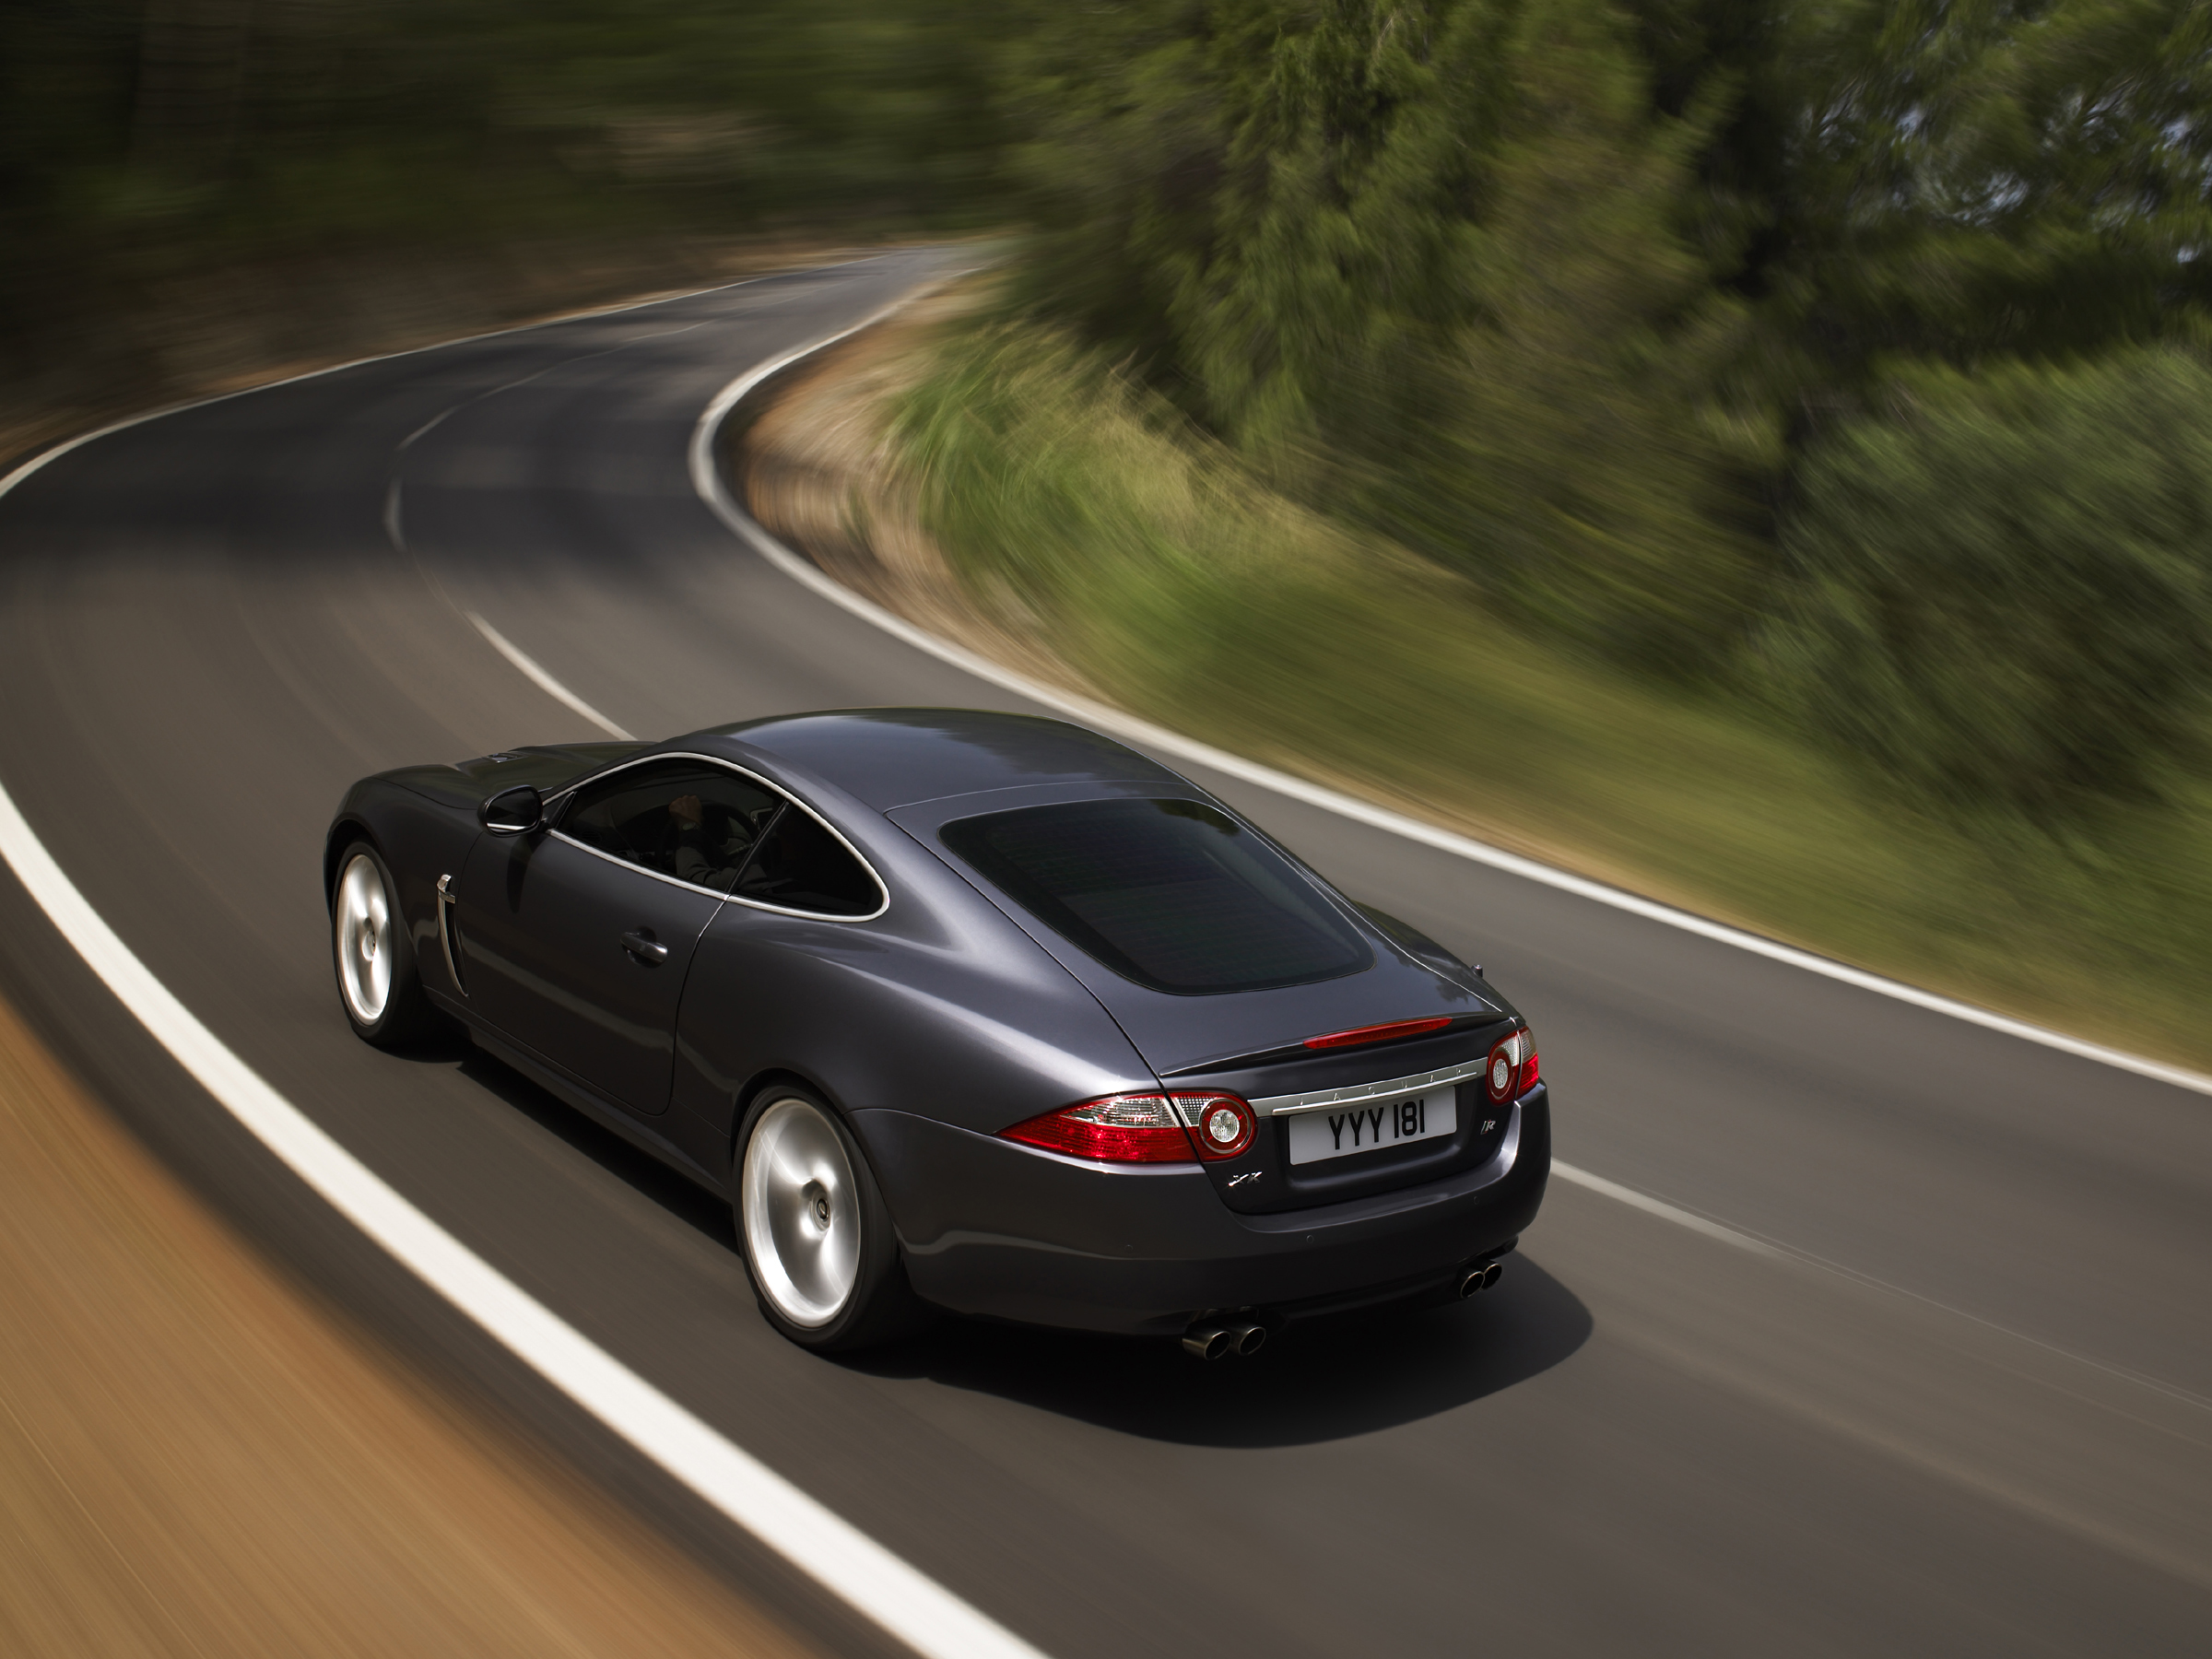 xkr coupe high Car HD Wallpaper